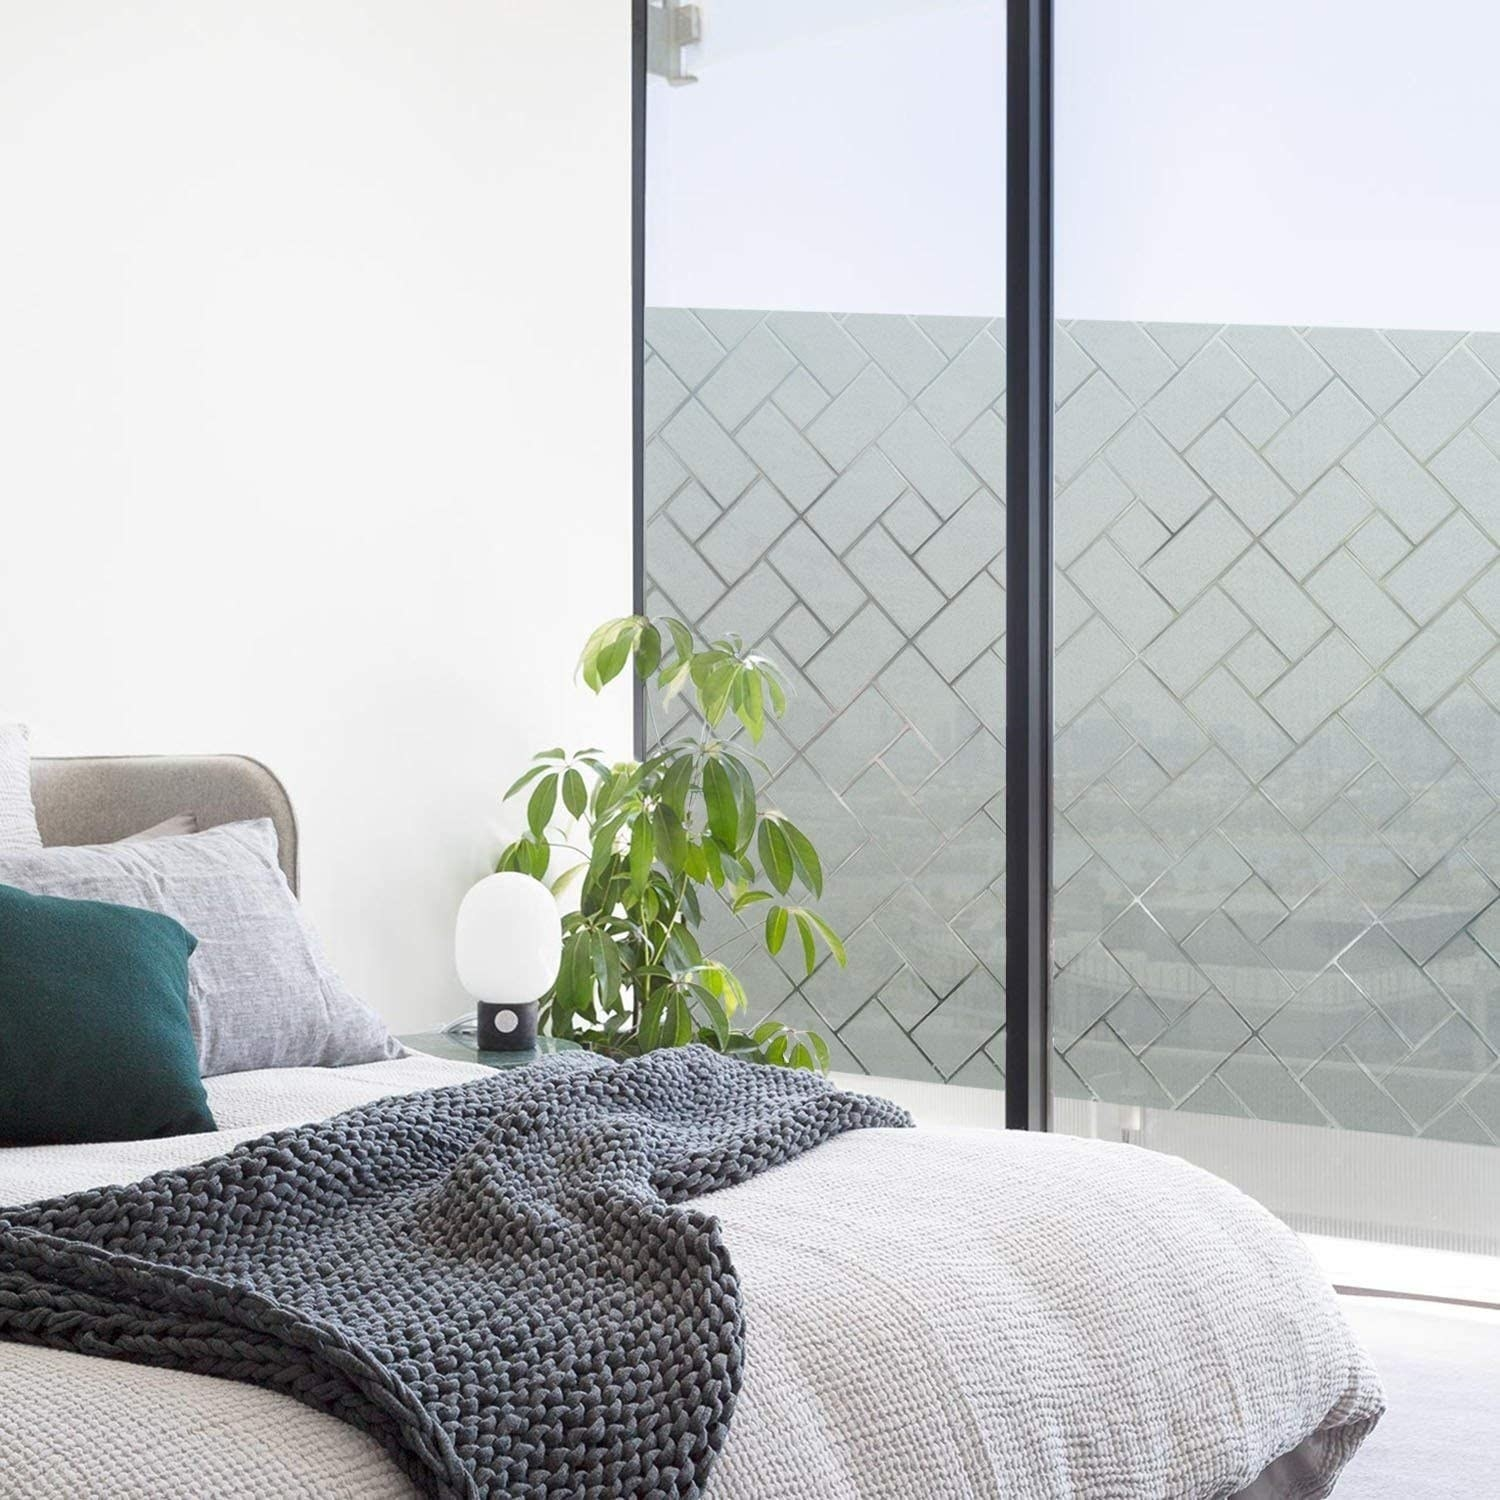 Bedroom with the privacy film with a rectangle design on a large window